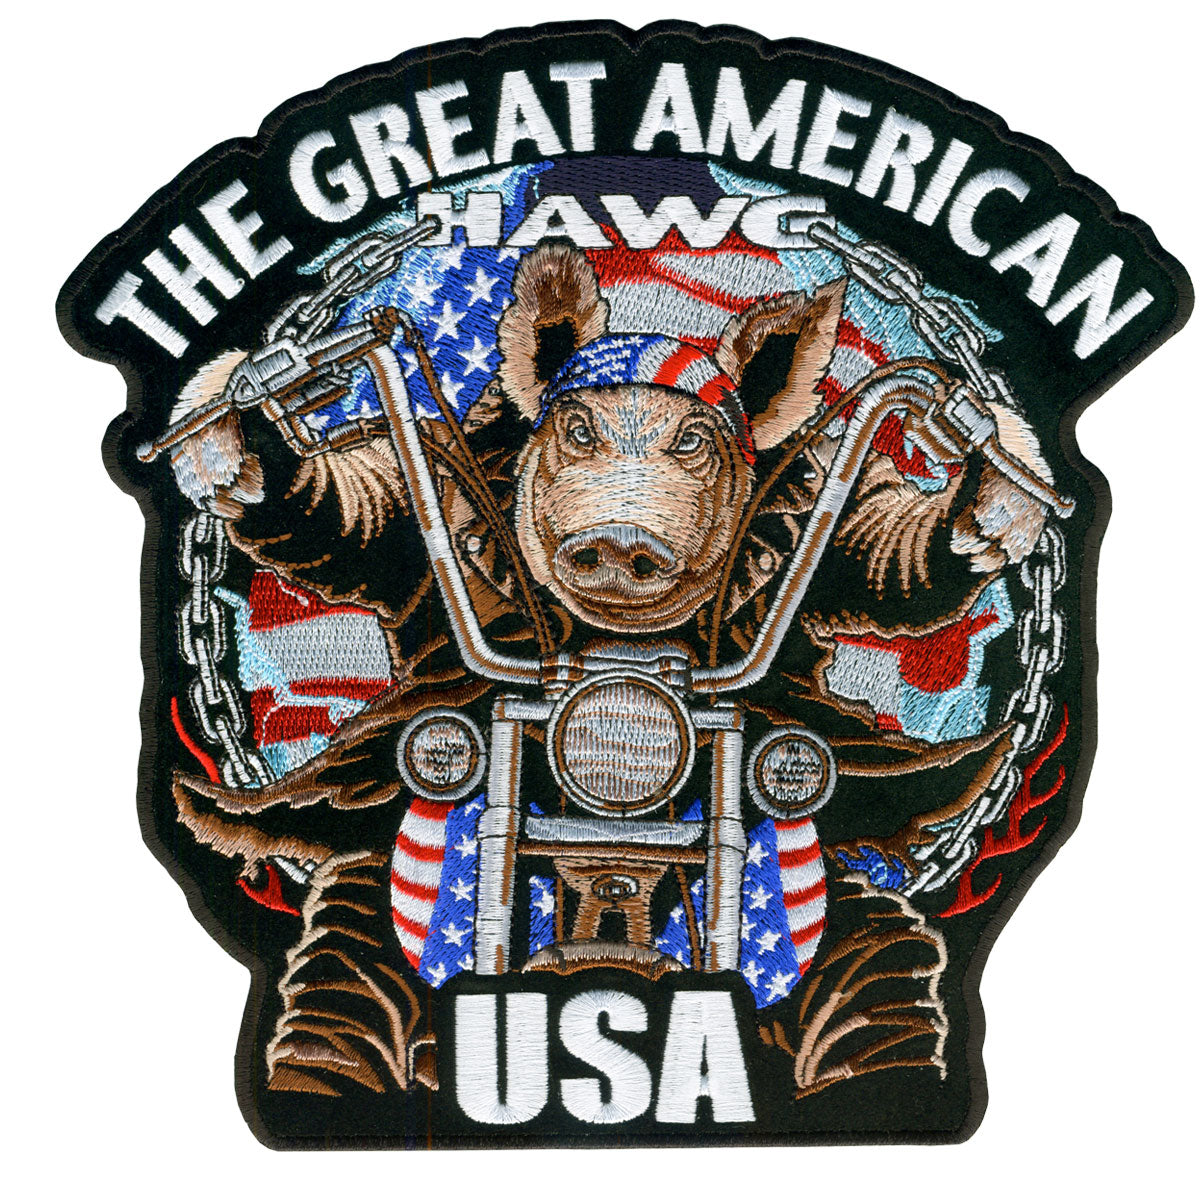 "Hot Leathers Great Amerian Hawg 4"" x 4"" Patch"